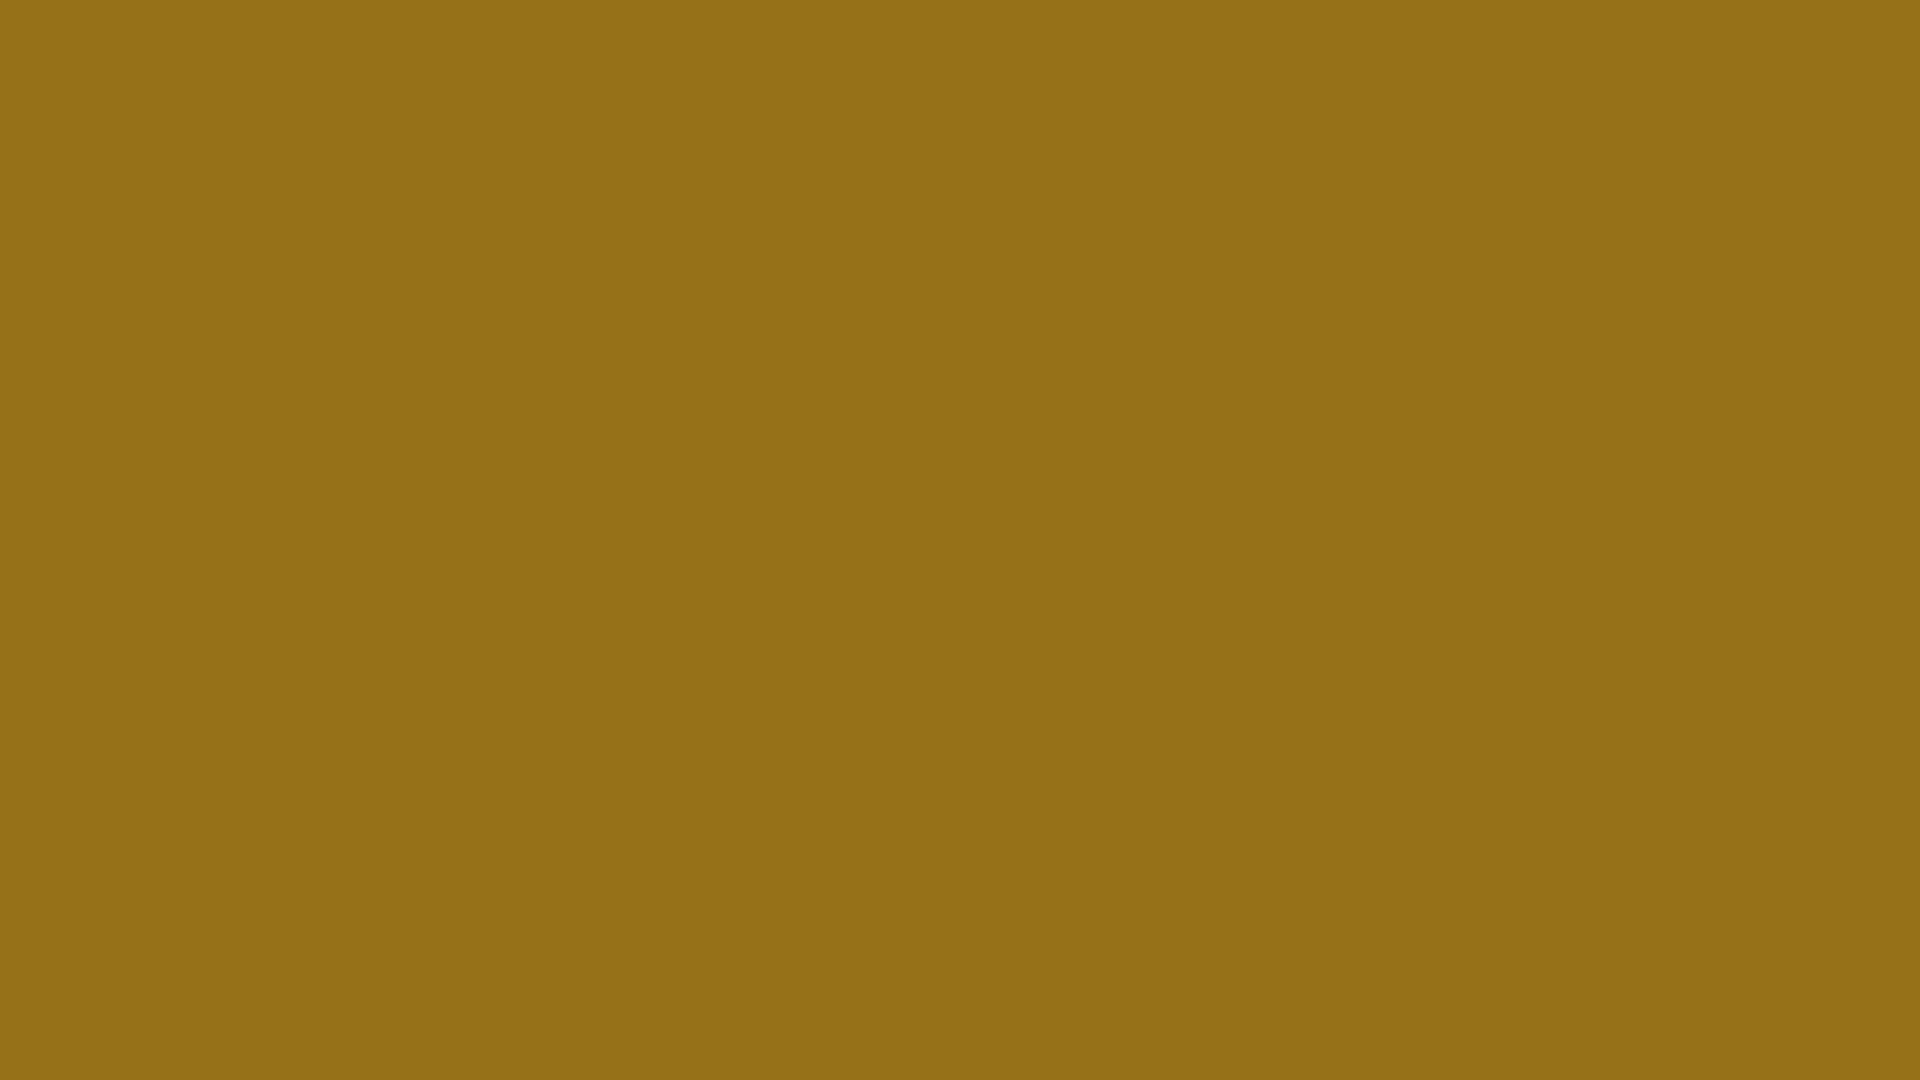 1920x1080 Drab Solid Color Background